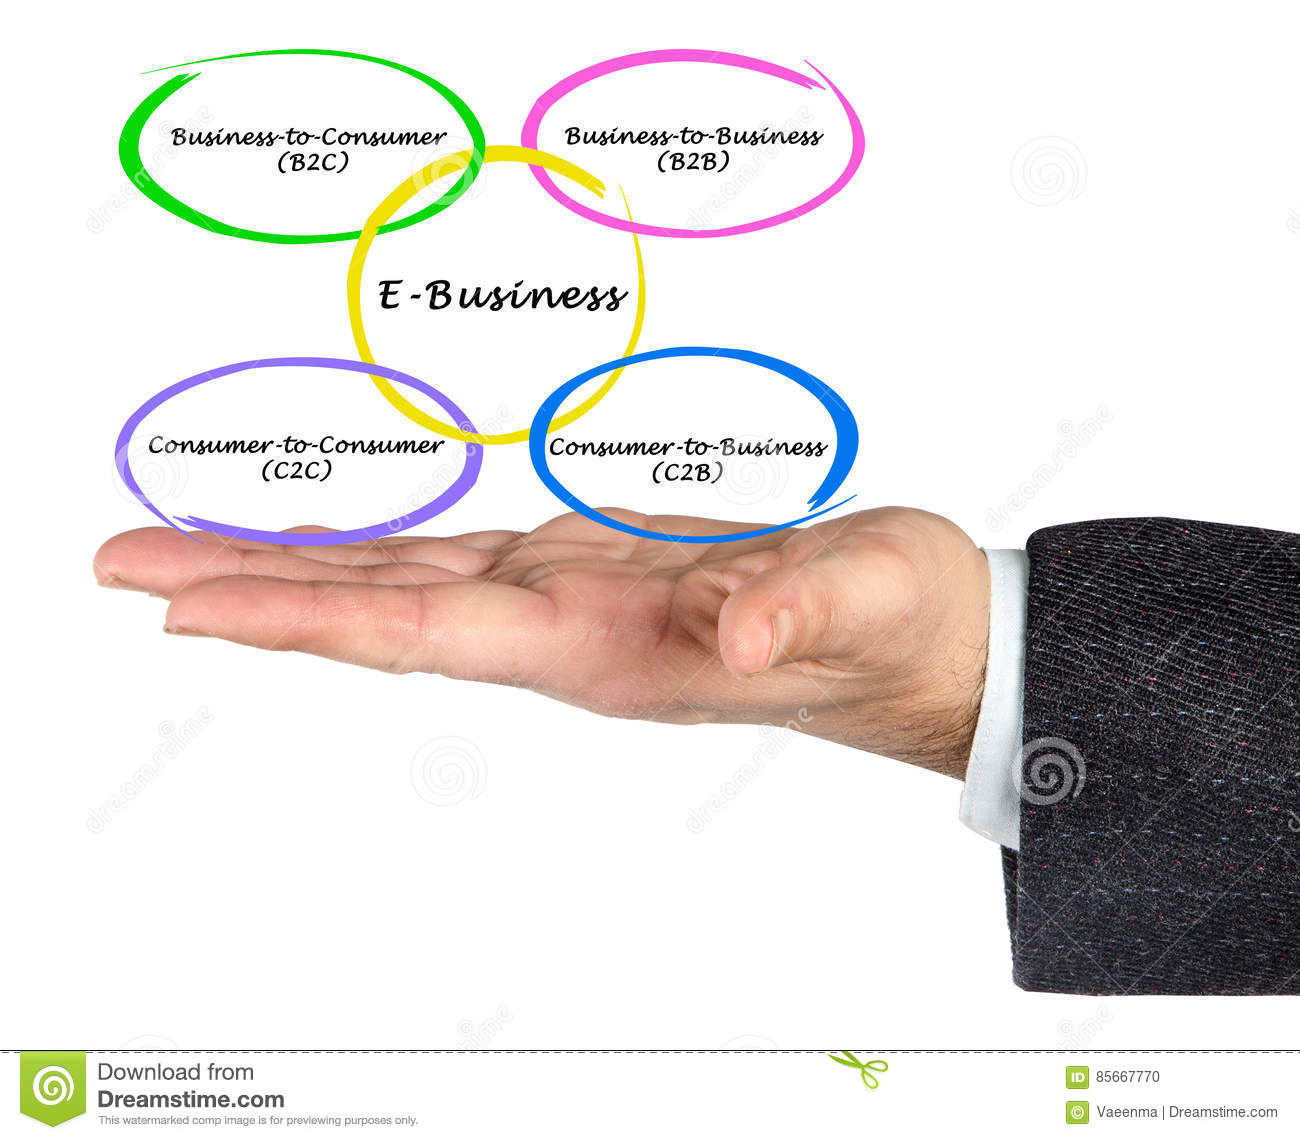 Types of e business stock photo image of diagram concept 85667770 download types of e business stock photo image of diagram concept 85667770 ccuart Images